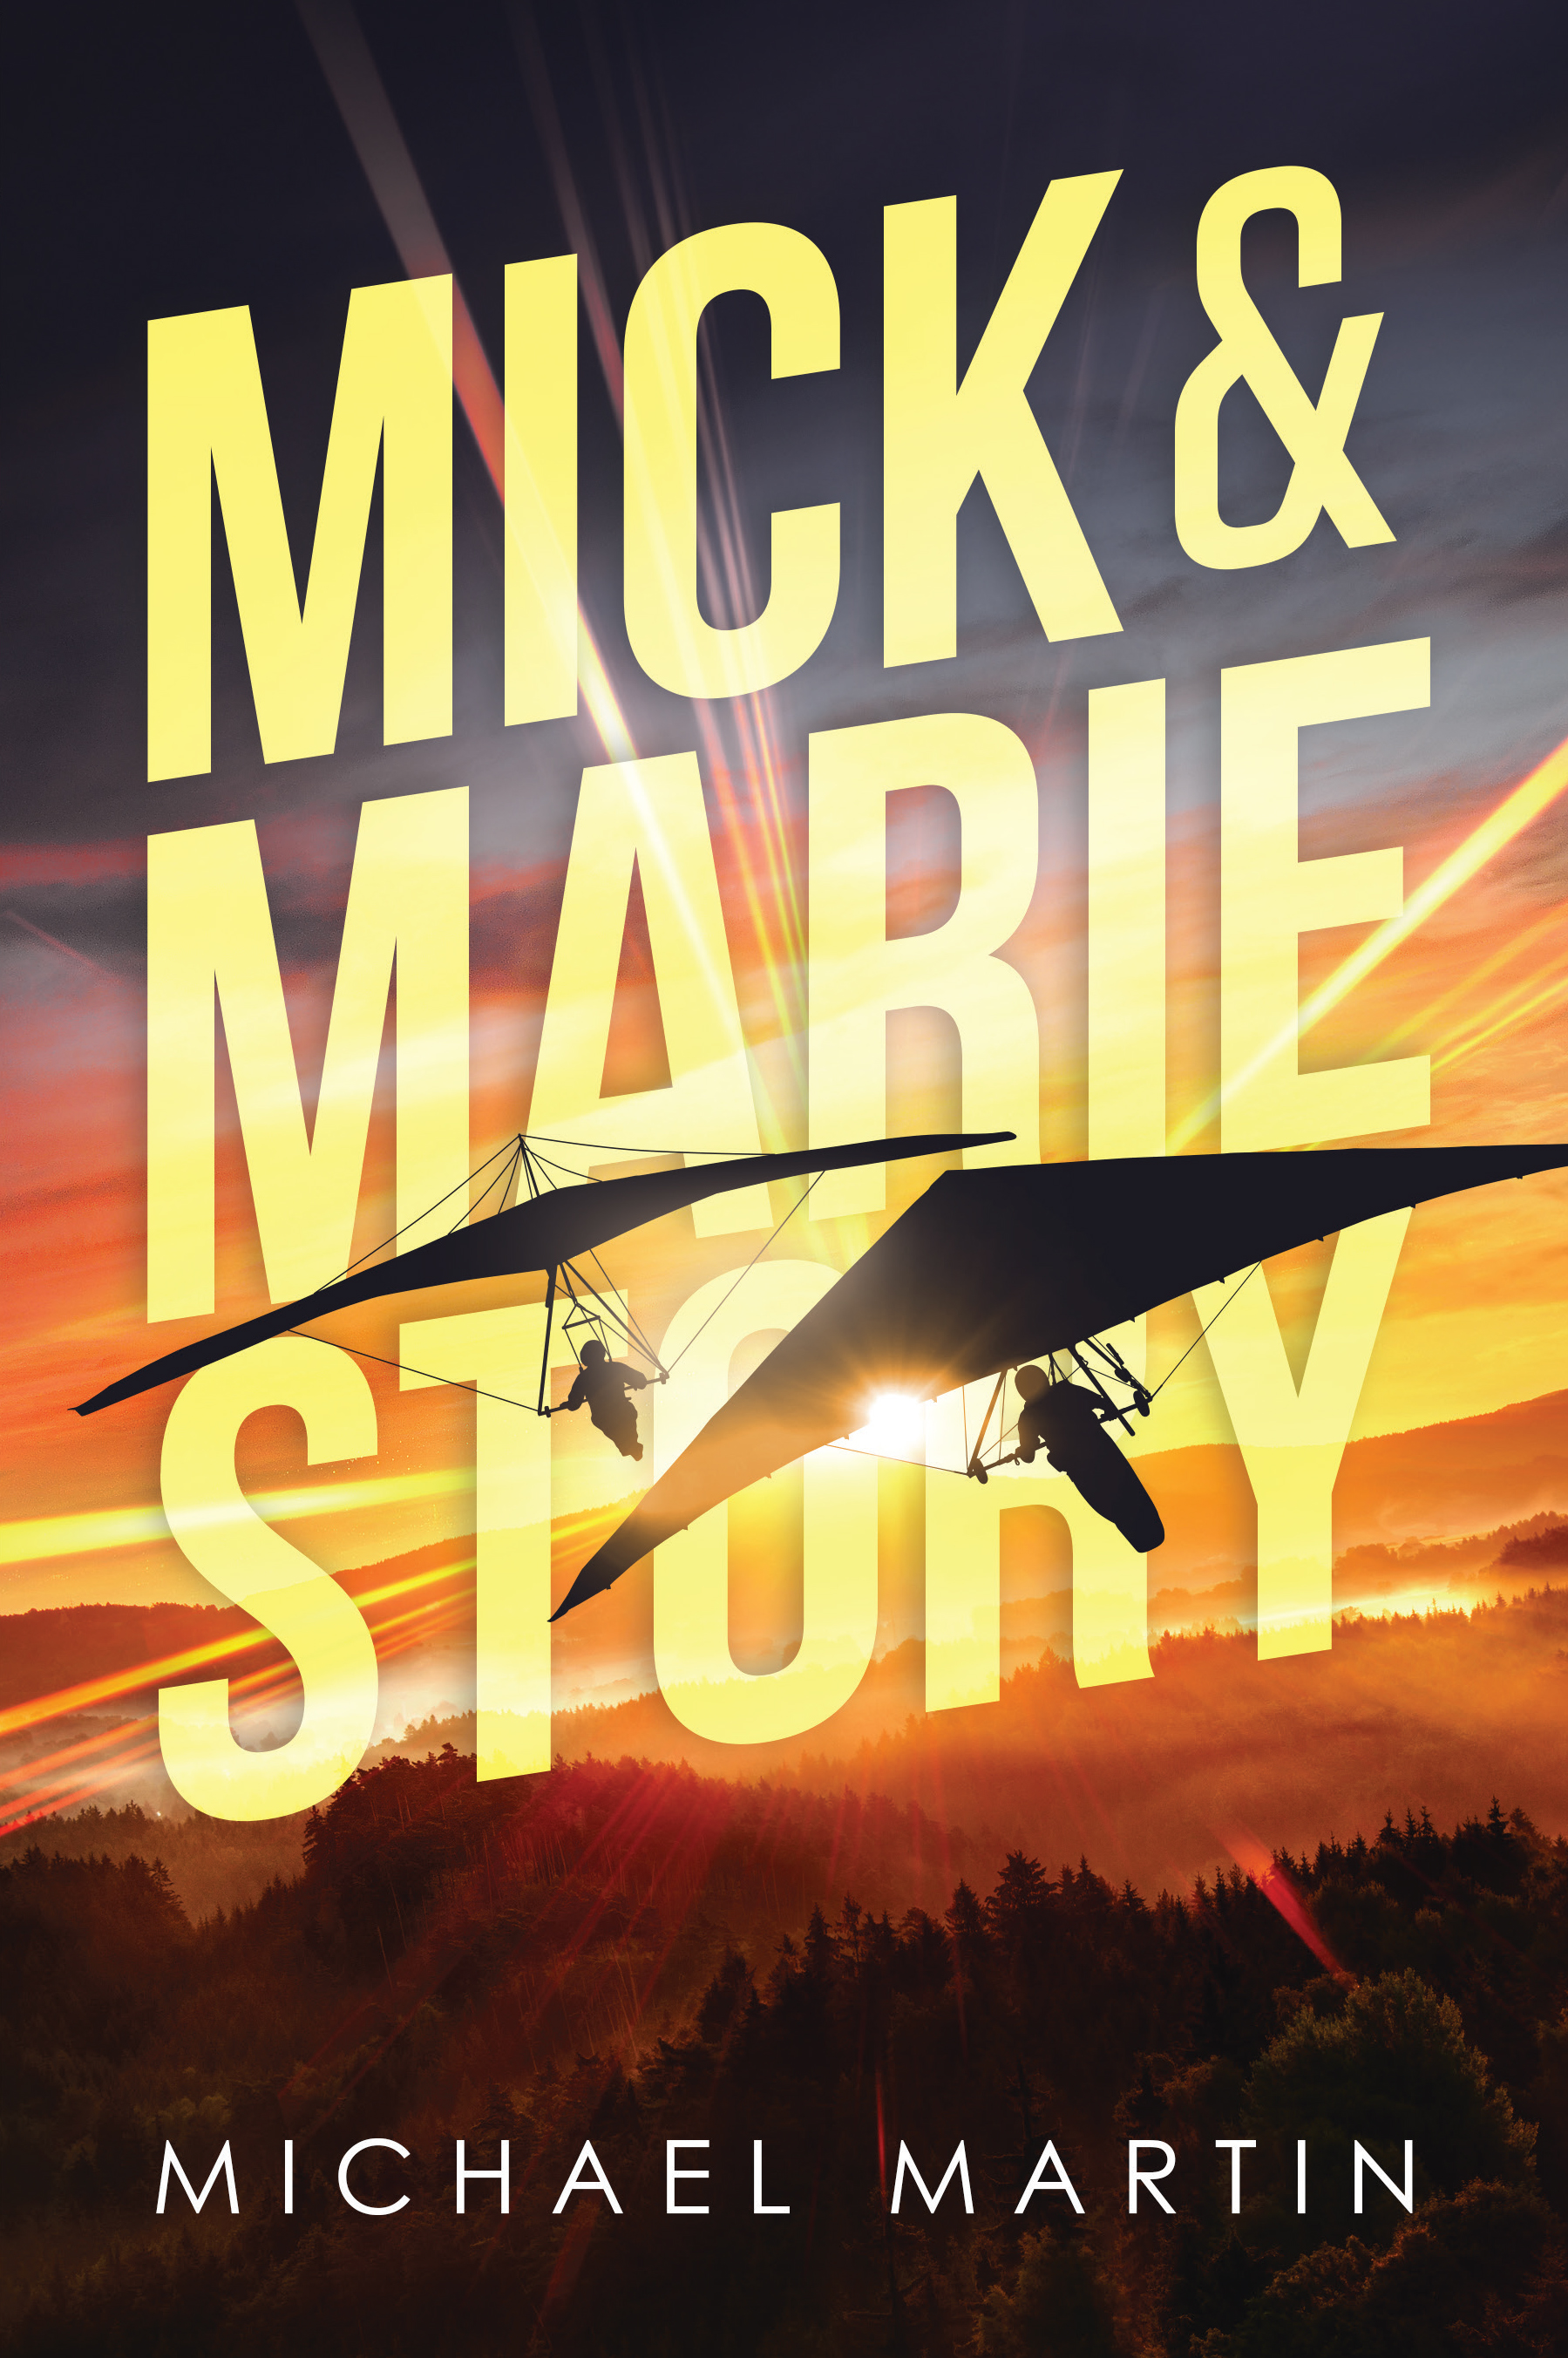 A Red Hot Story Penned by Author Michael Martin